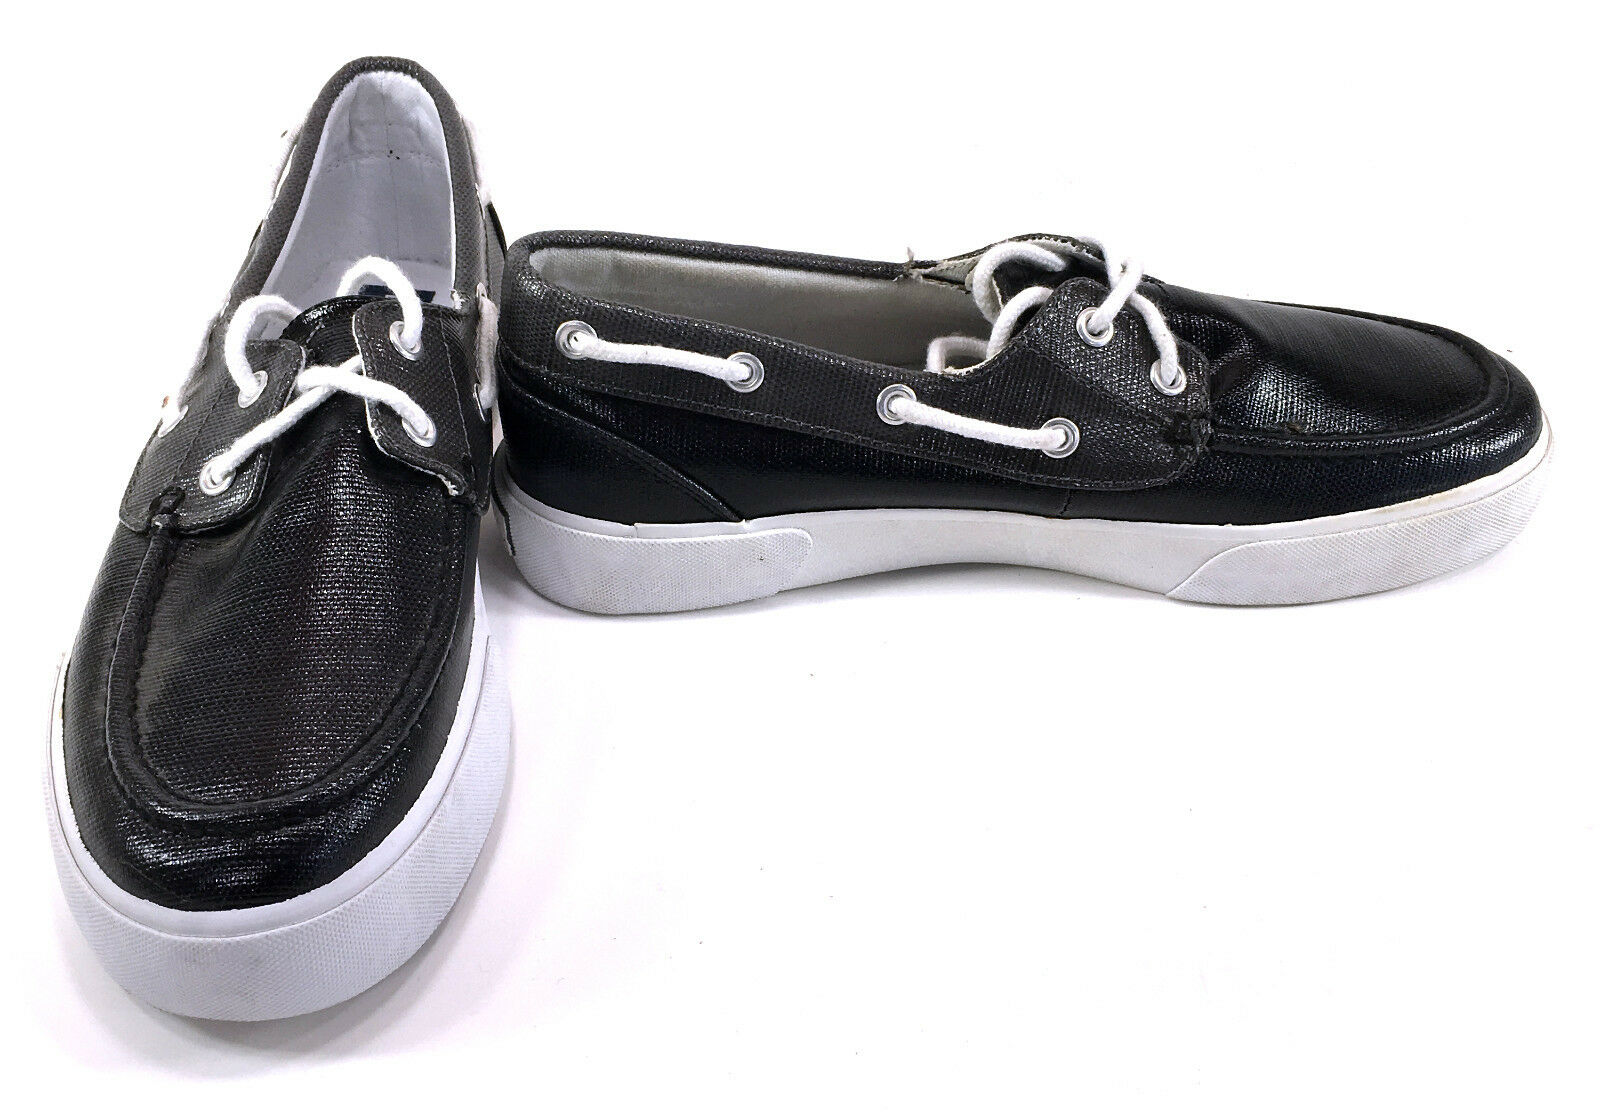 Polo Ralph Lauren Boat shoes Lander Coated Canvas Black White Topsiders Size 8